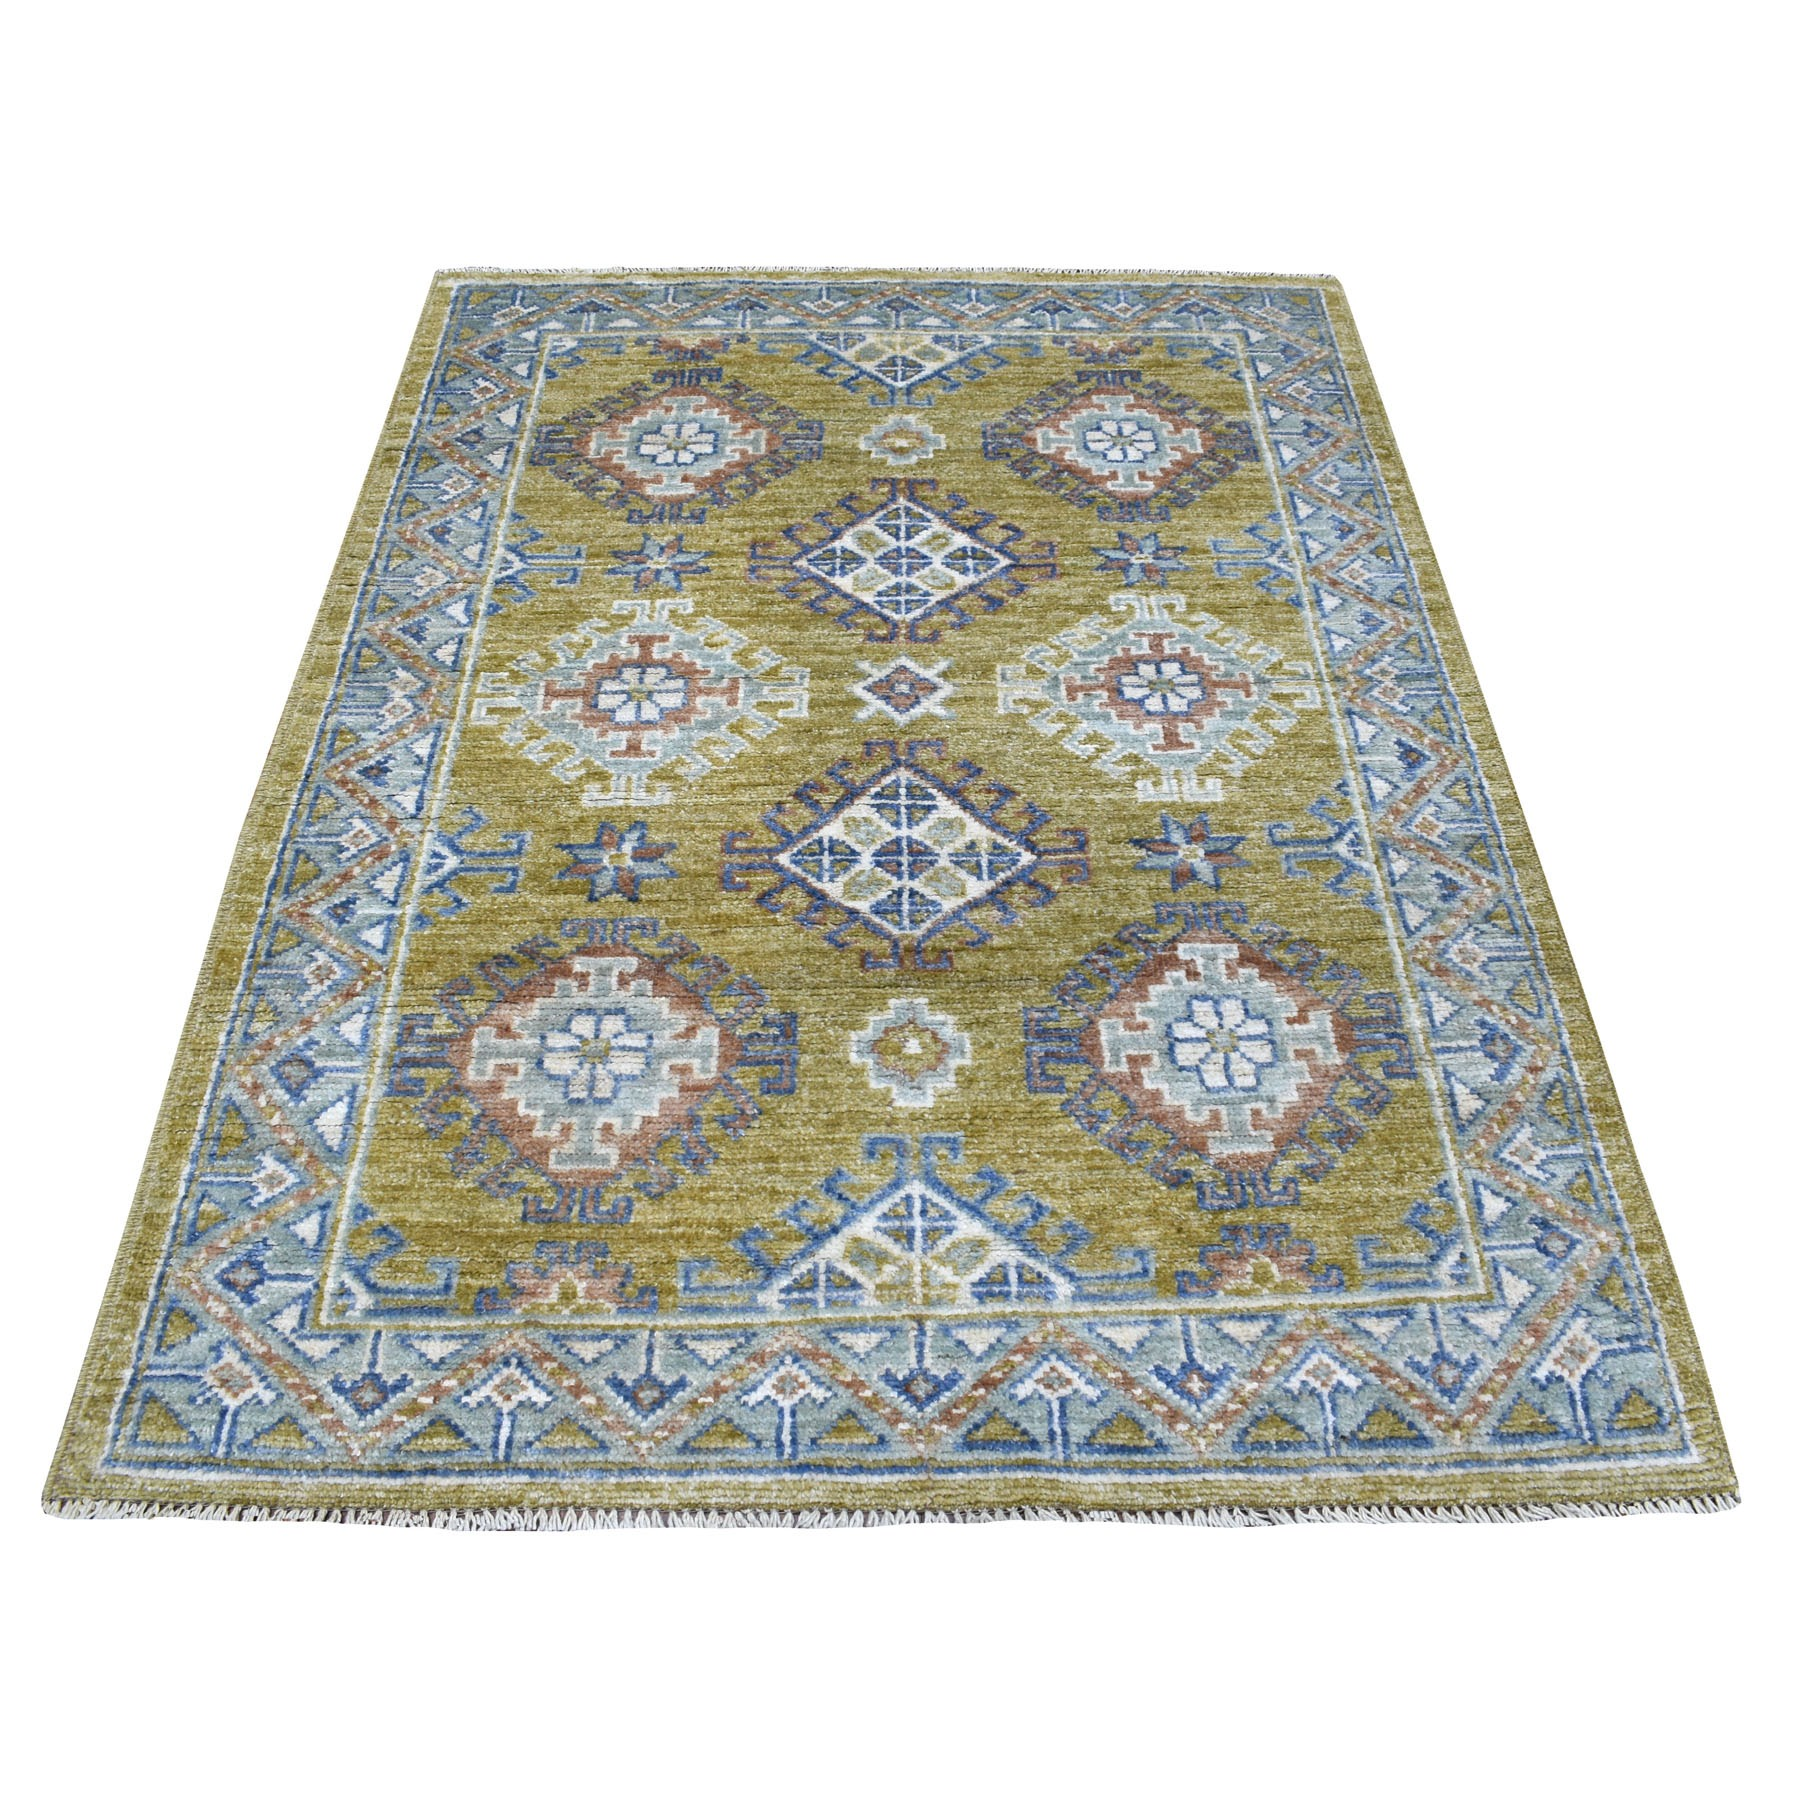 "4'1""x6' Anatolian Design With Glimmery Wool Mustard Color Hand Knotted Oriental Rug"